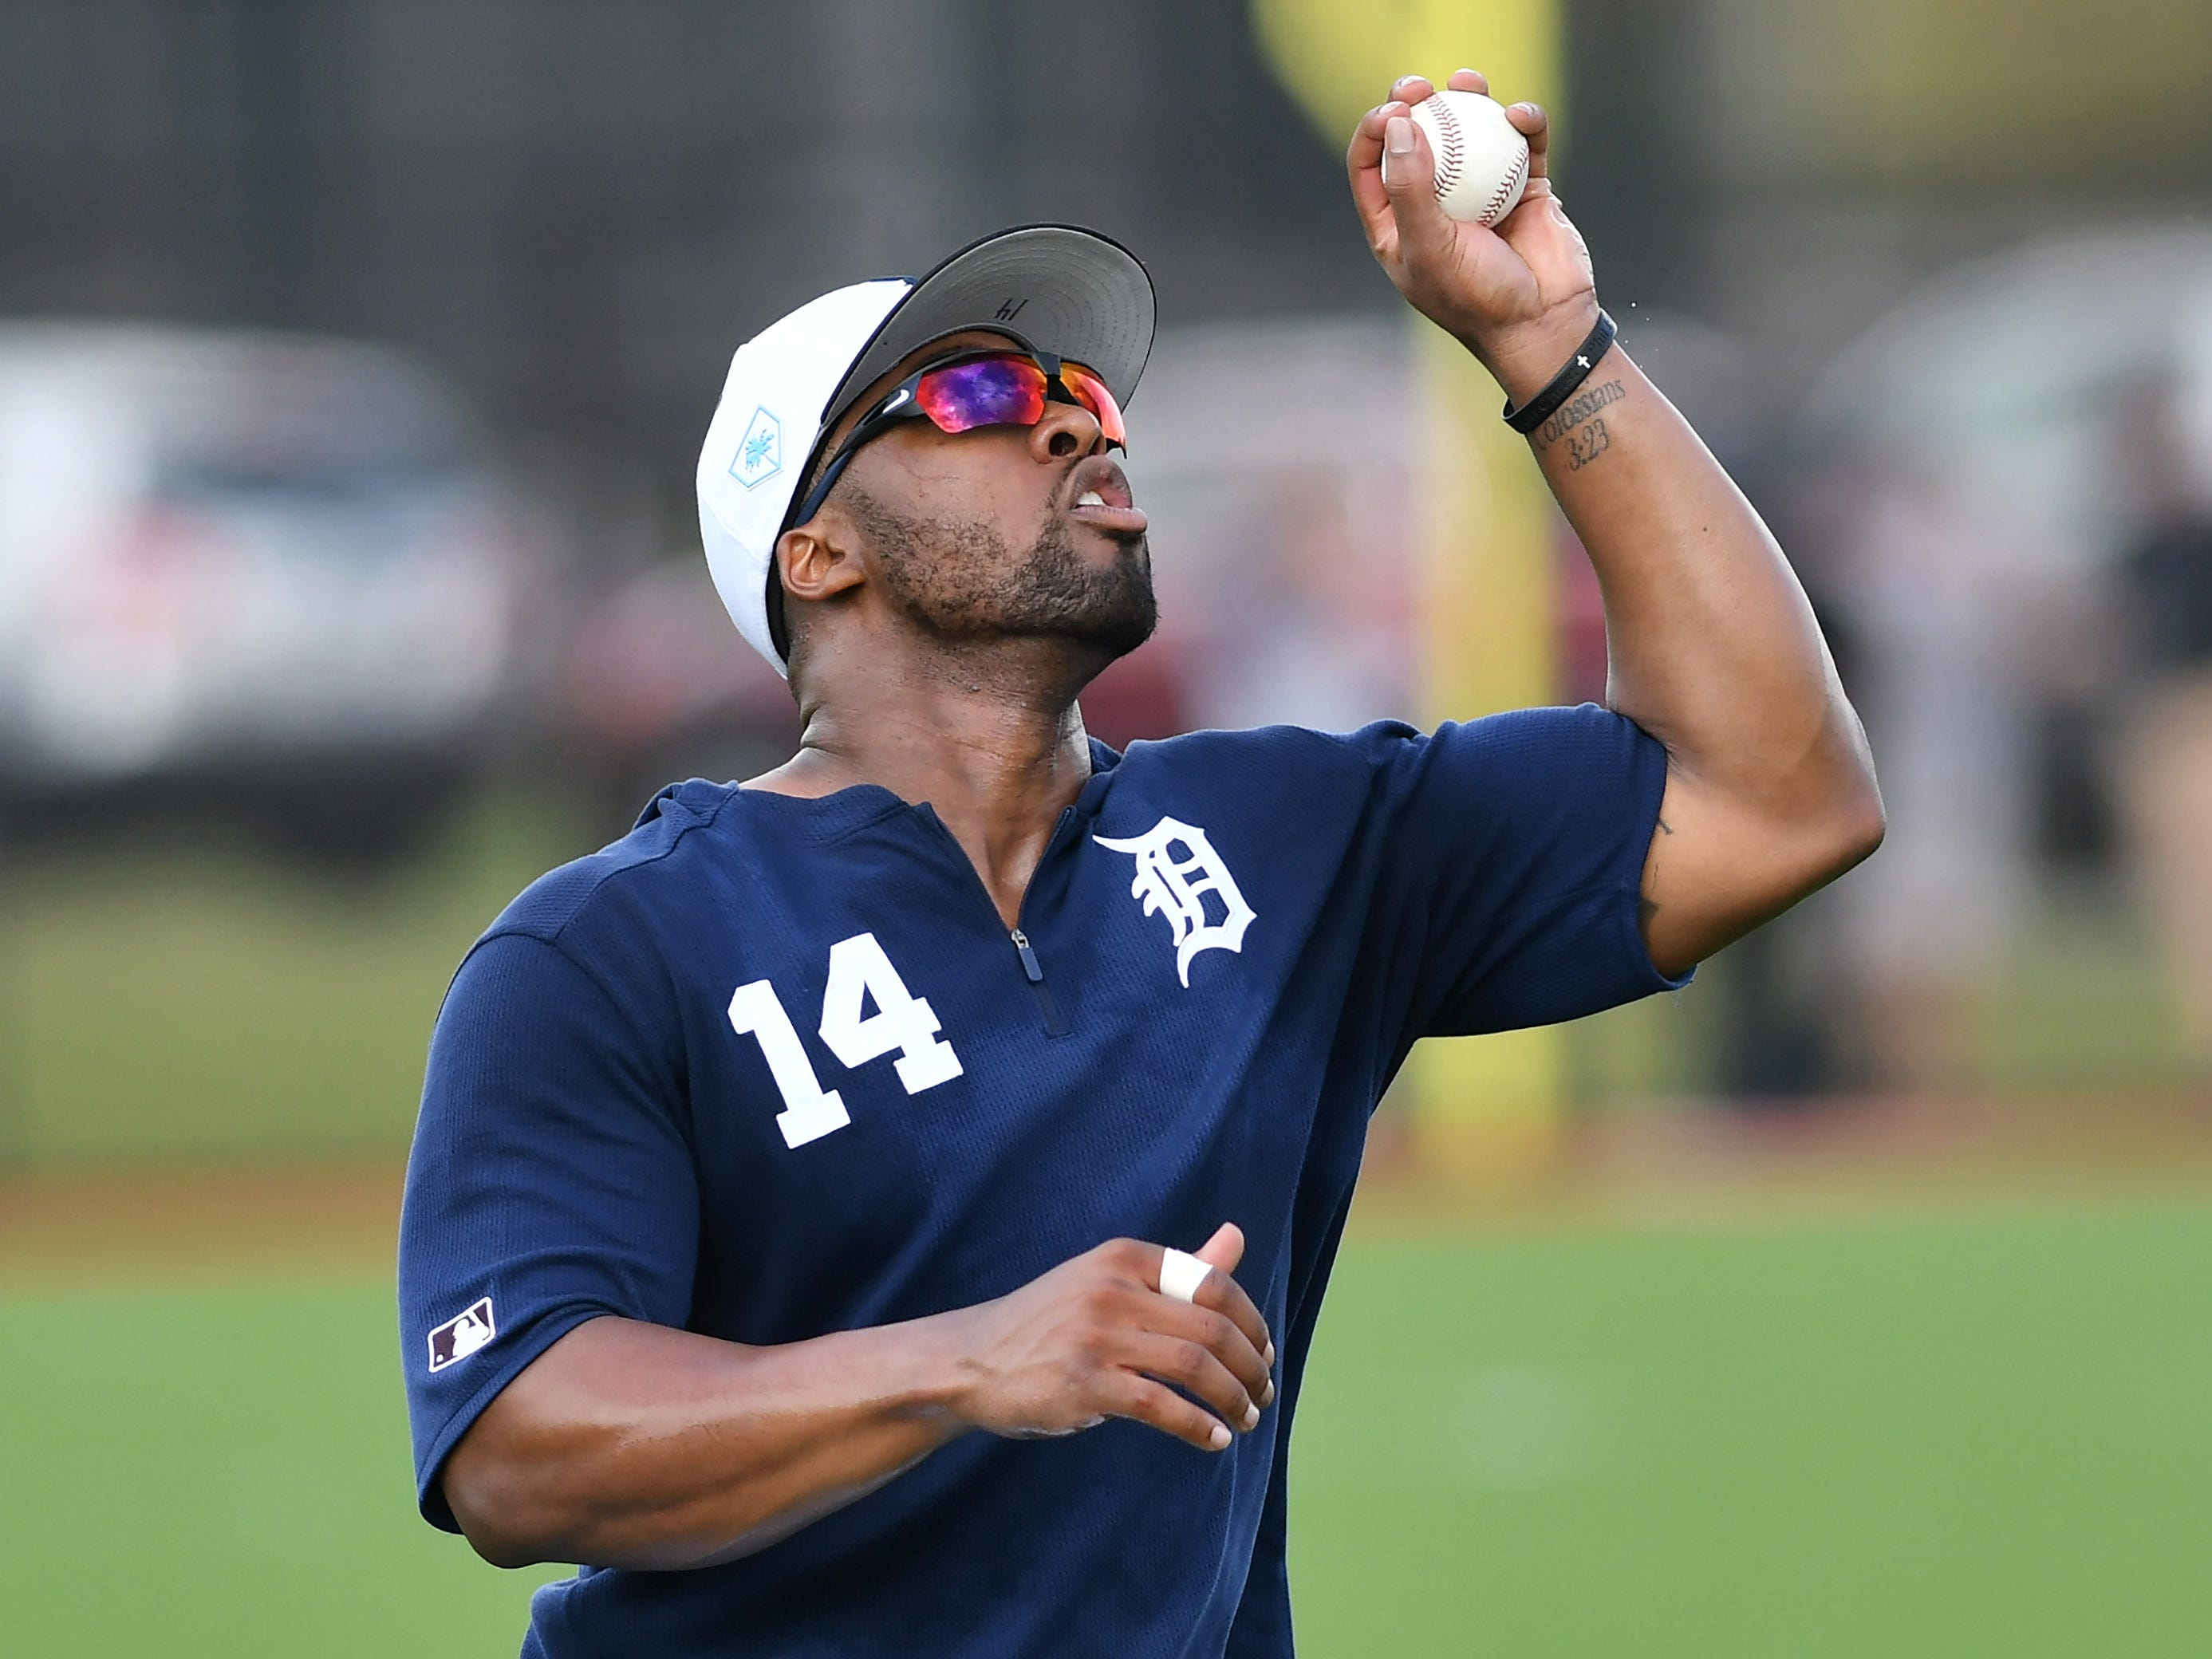 Tigers outfielder Christin Stewart catches a pop-up barehanded during drills.